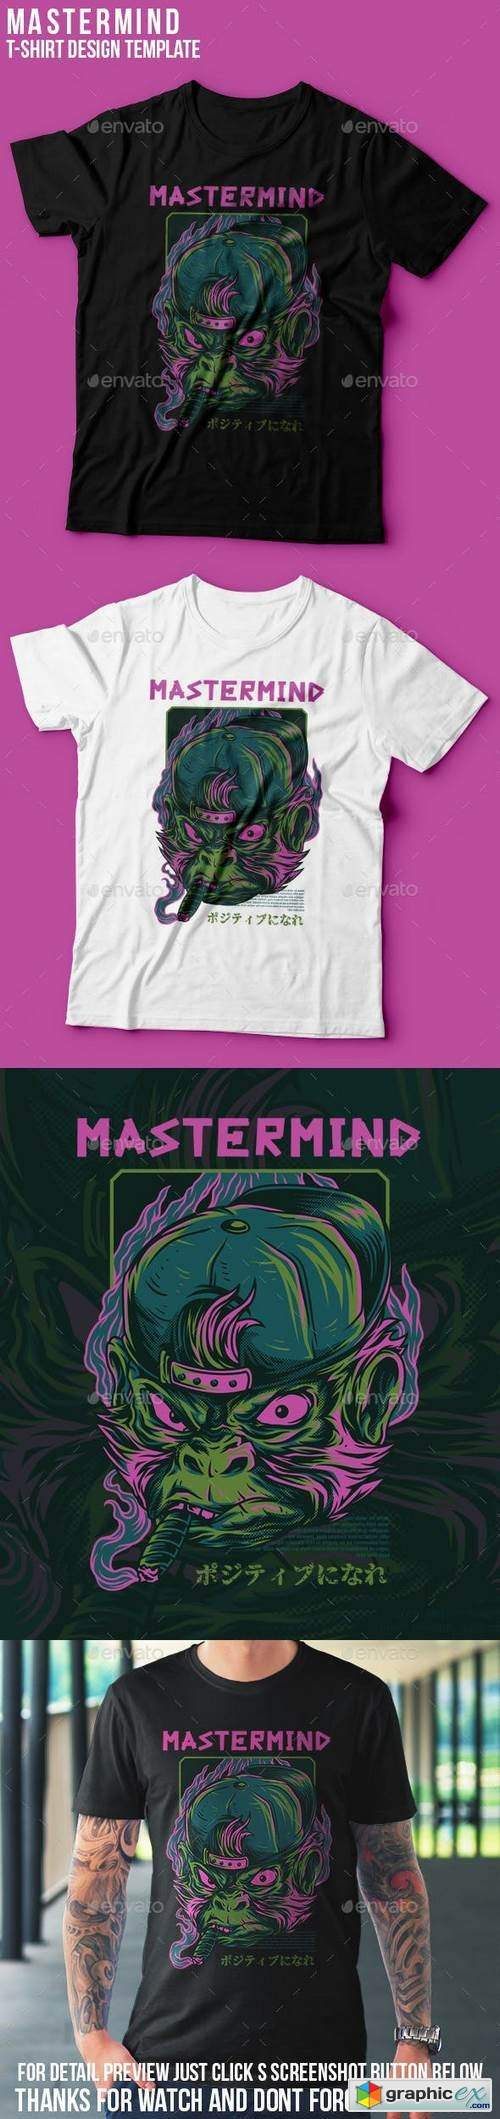 Mastermind Monkey T-Shirt Design